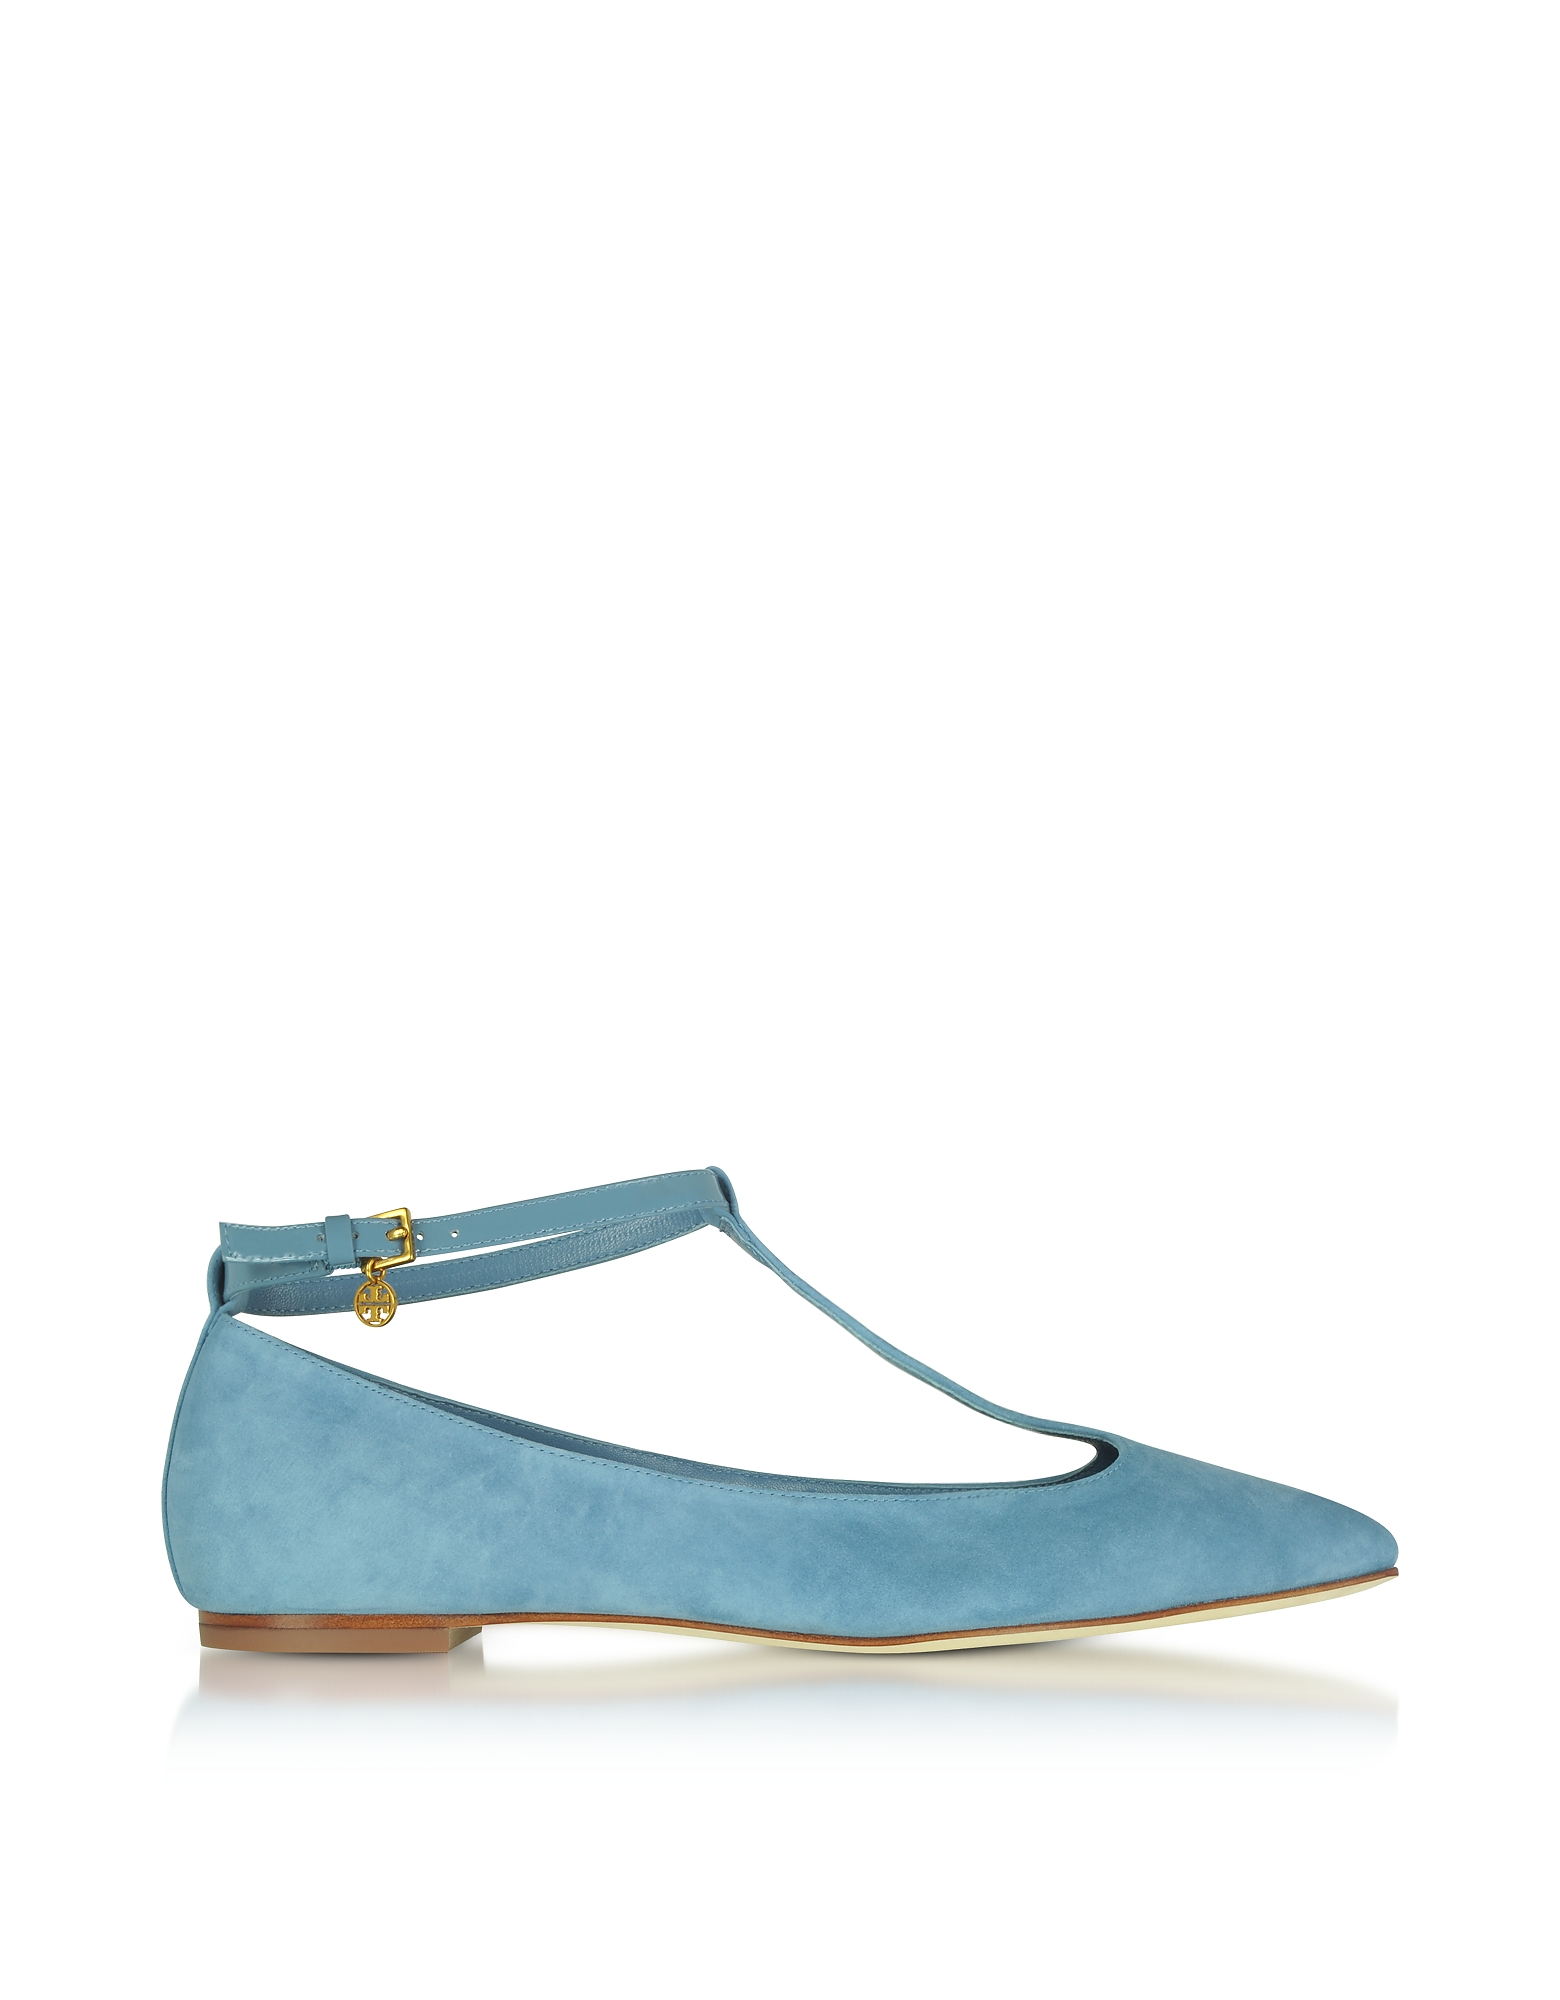 Tory Burch Shoes, Blue Yonder Suede Ashton T-Strap Flat Ballerina